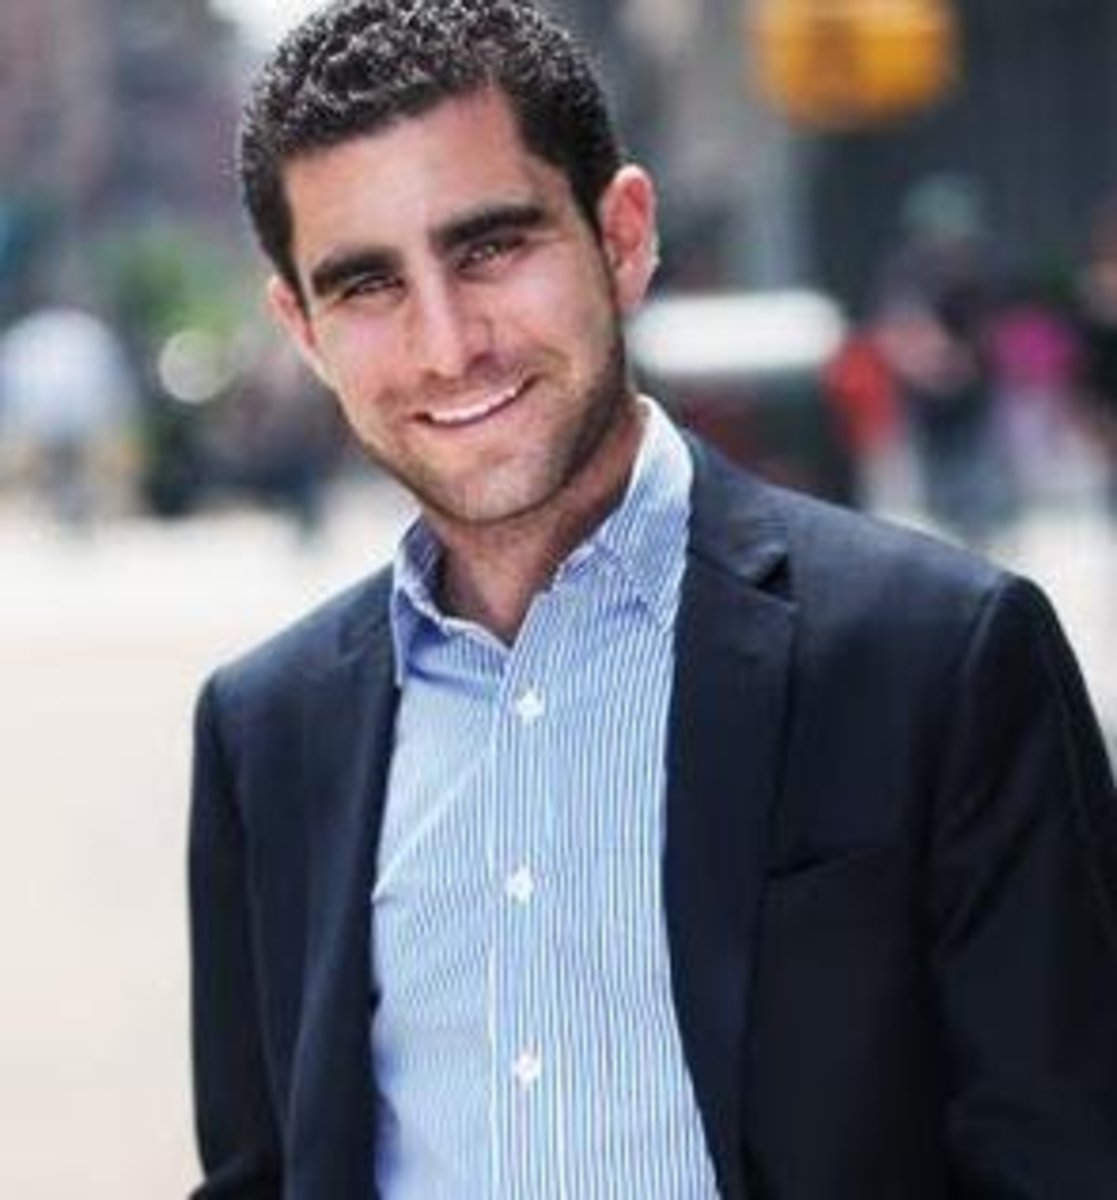 Op-ed - Charlie Shrem: Bitcoin is cash with wings